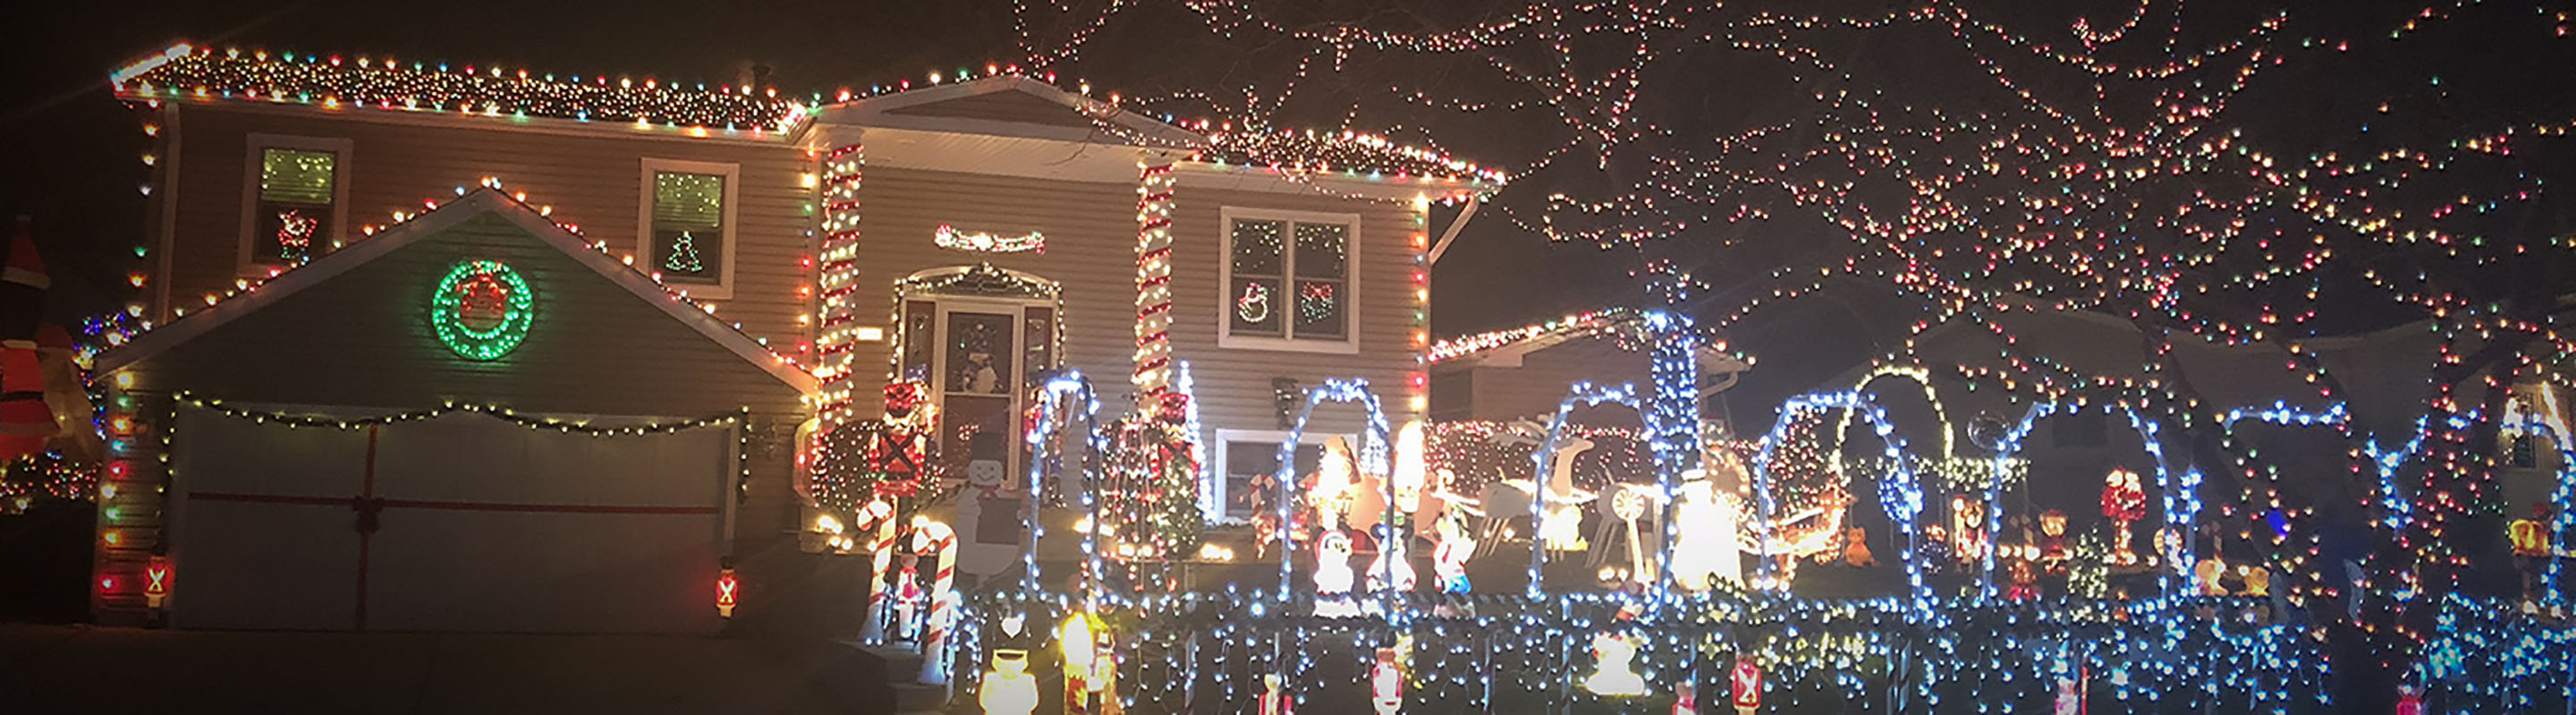 Shine the brightest for Holiday House Decorating Contest!